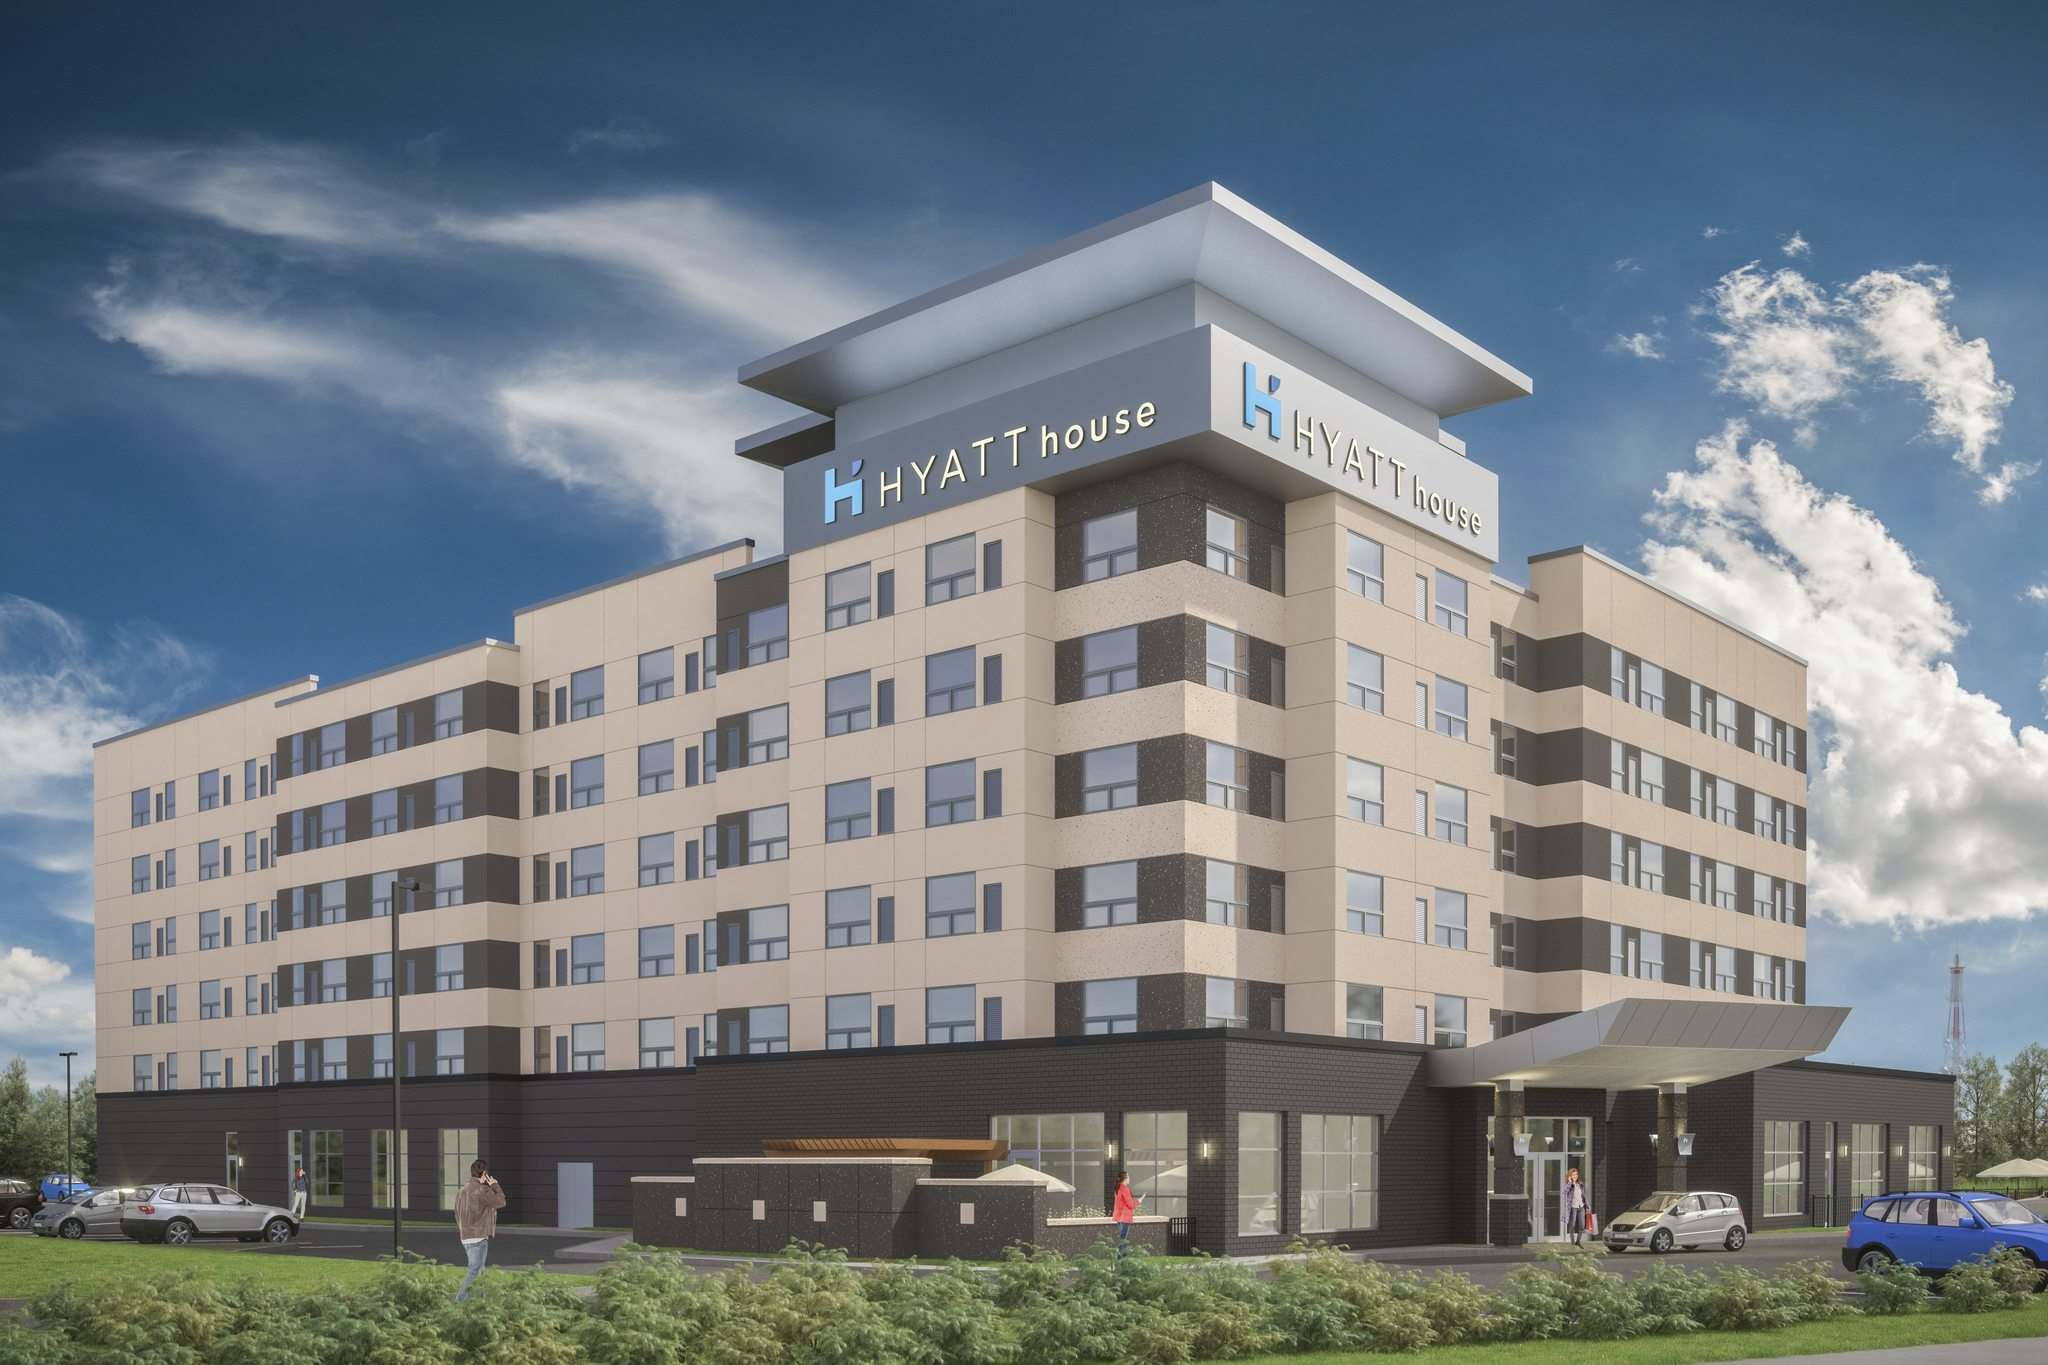 KOTHARI GROUP</p><p>Winnipeg&rsquo;s first Hyatt House is expected to open next summer. It will feature 3,500 square feet of meeting space on the main floor, a swimming pool and a gym.</p></p>